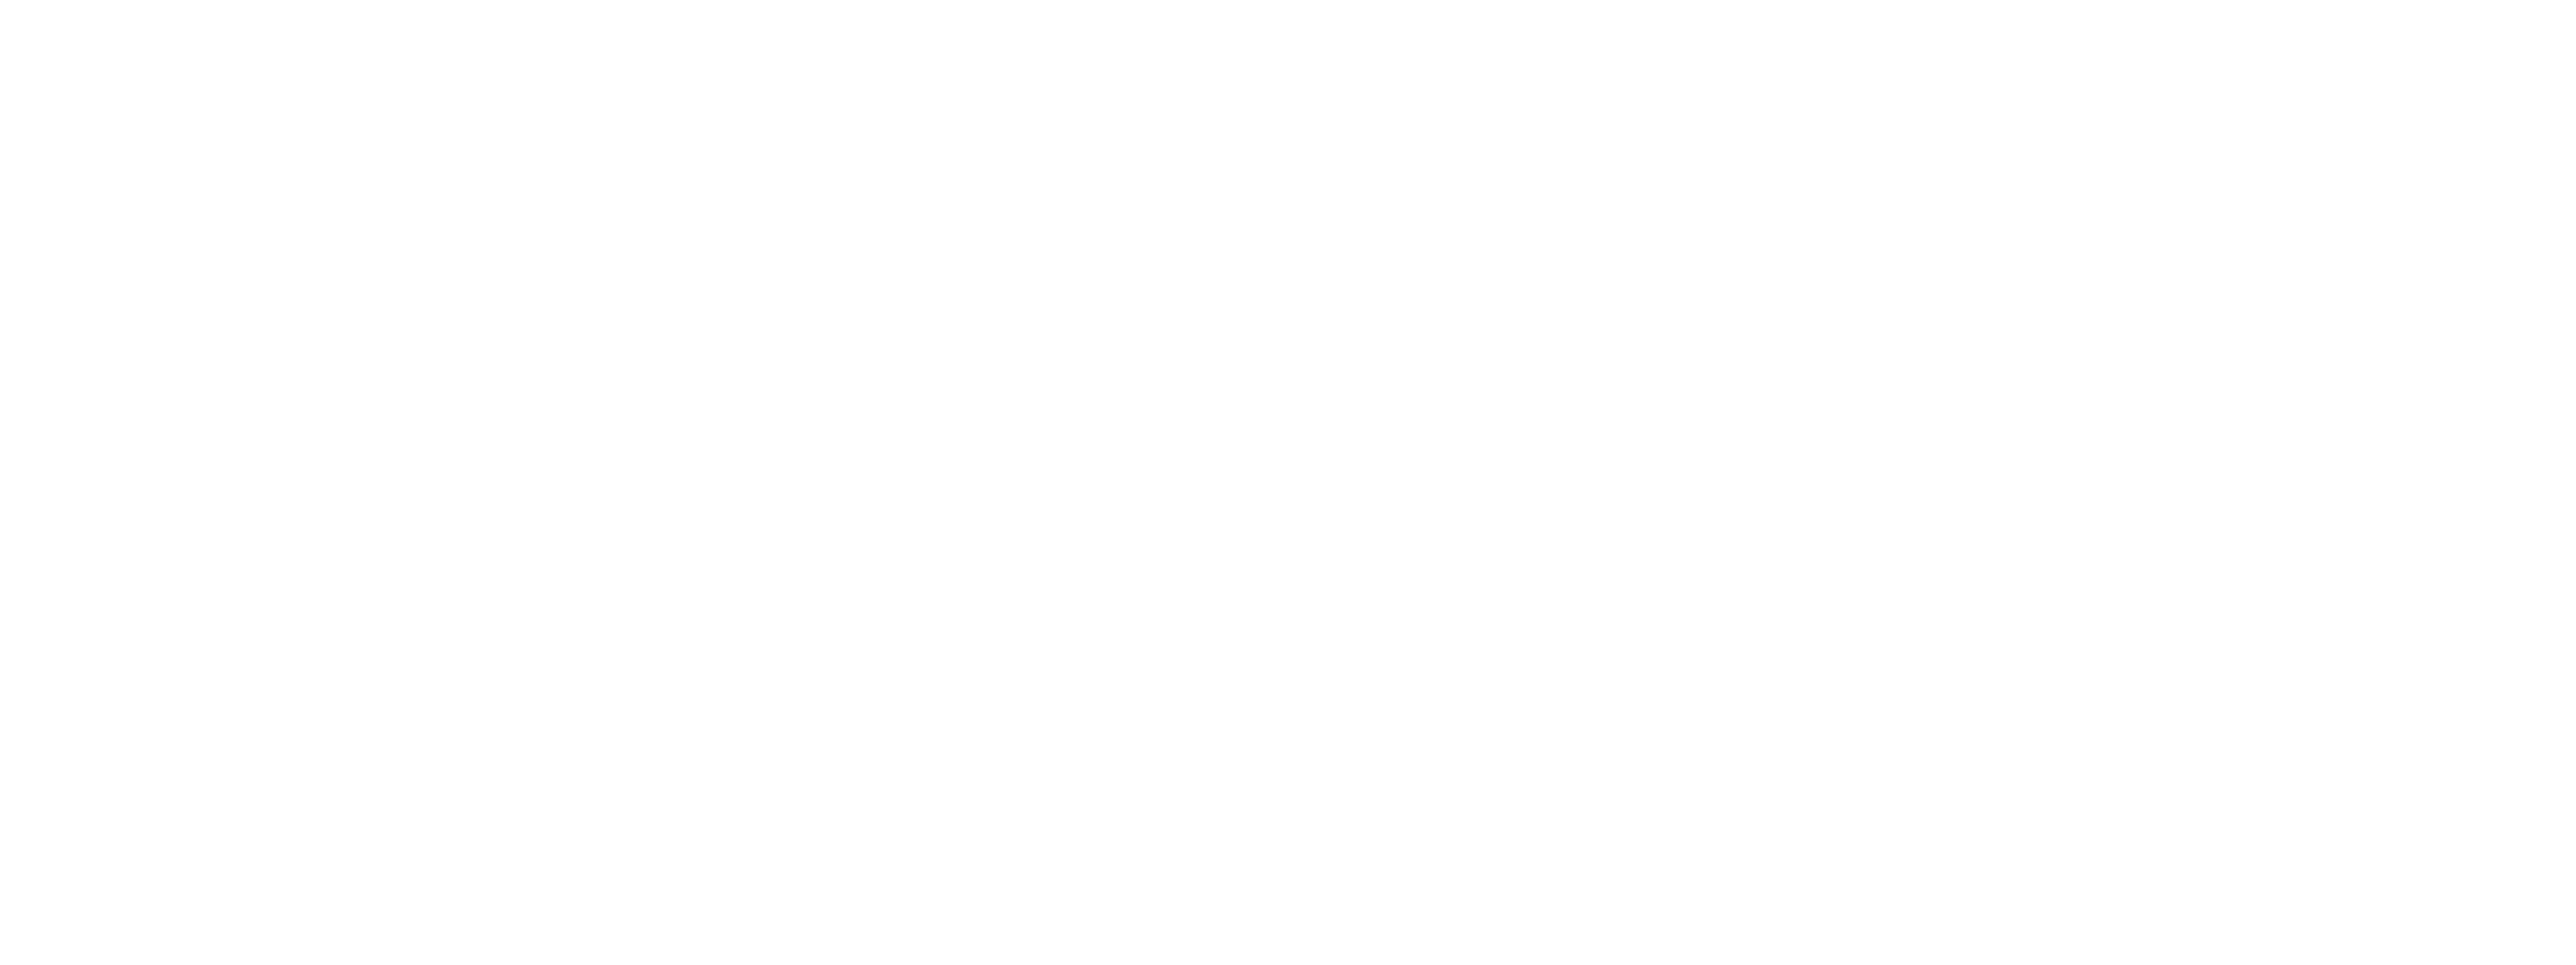 Clear the shelters NBCUniversal Owned television stations